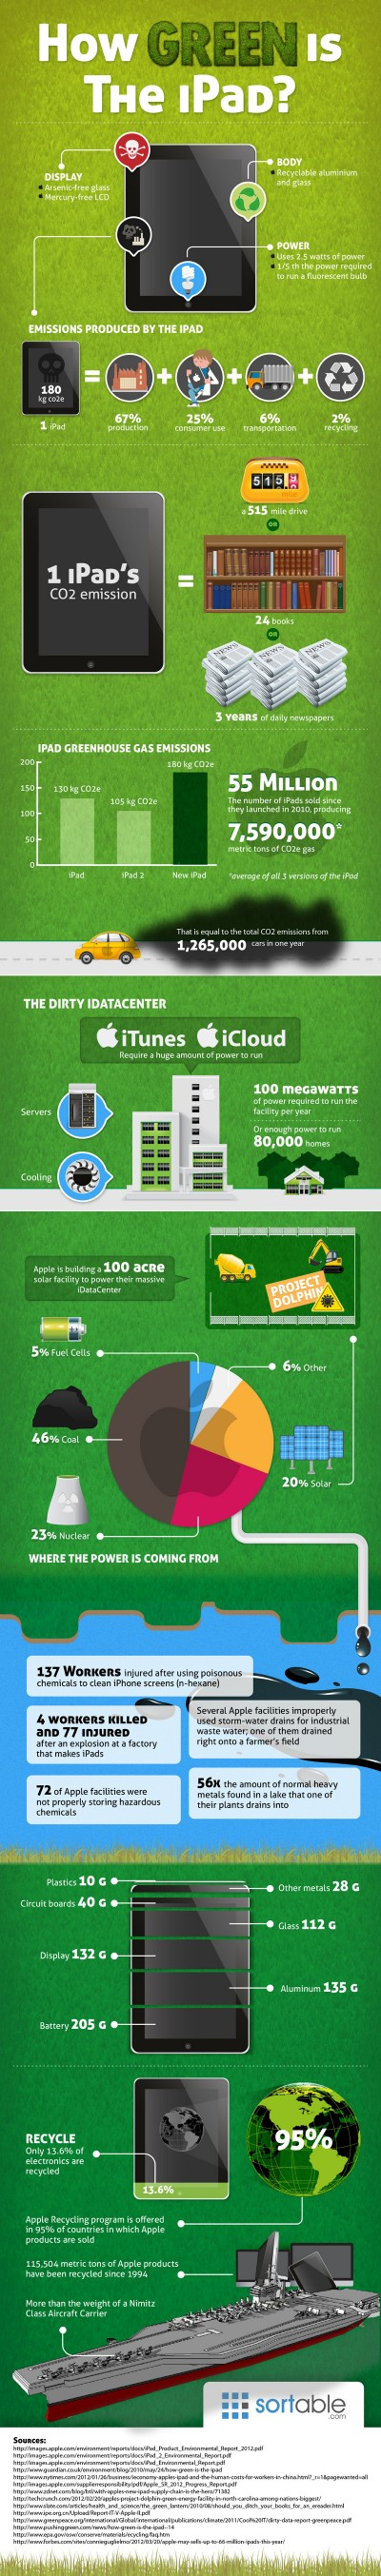 How Green is the iPad? [Infographic]